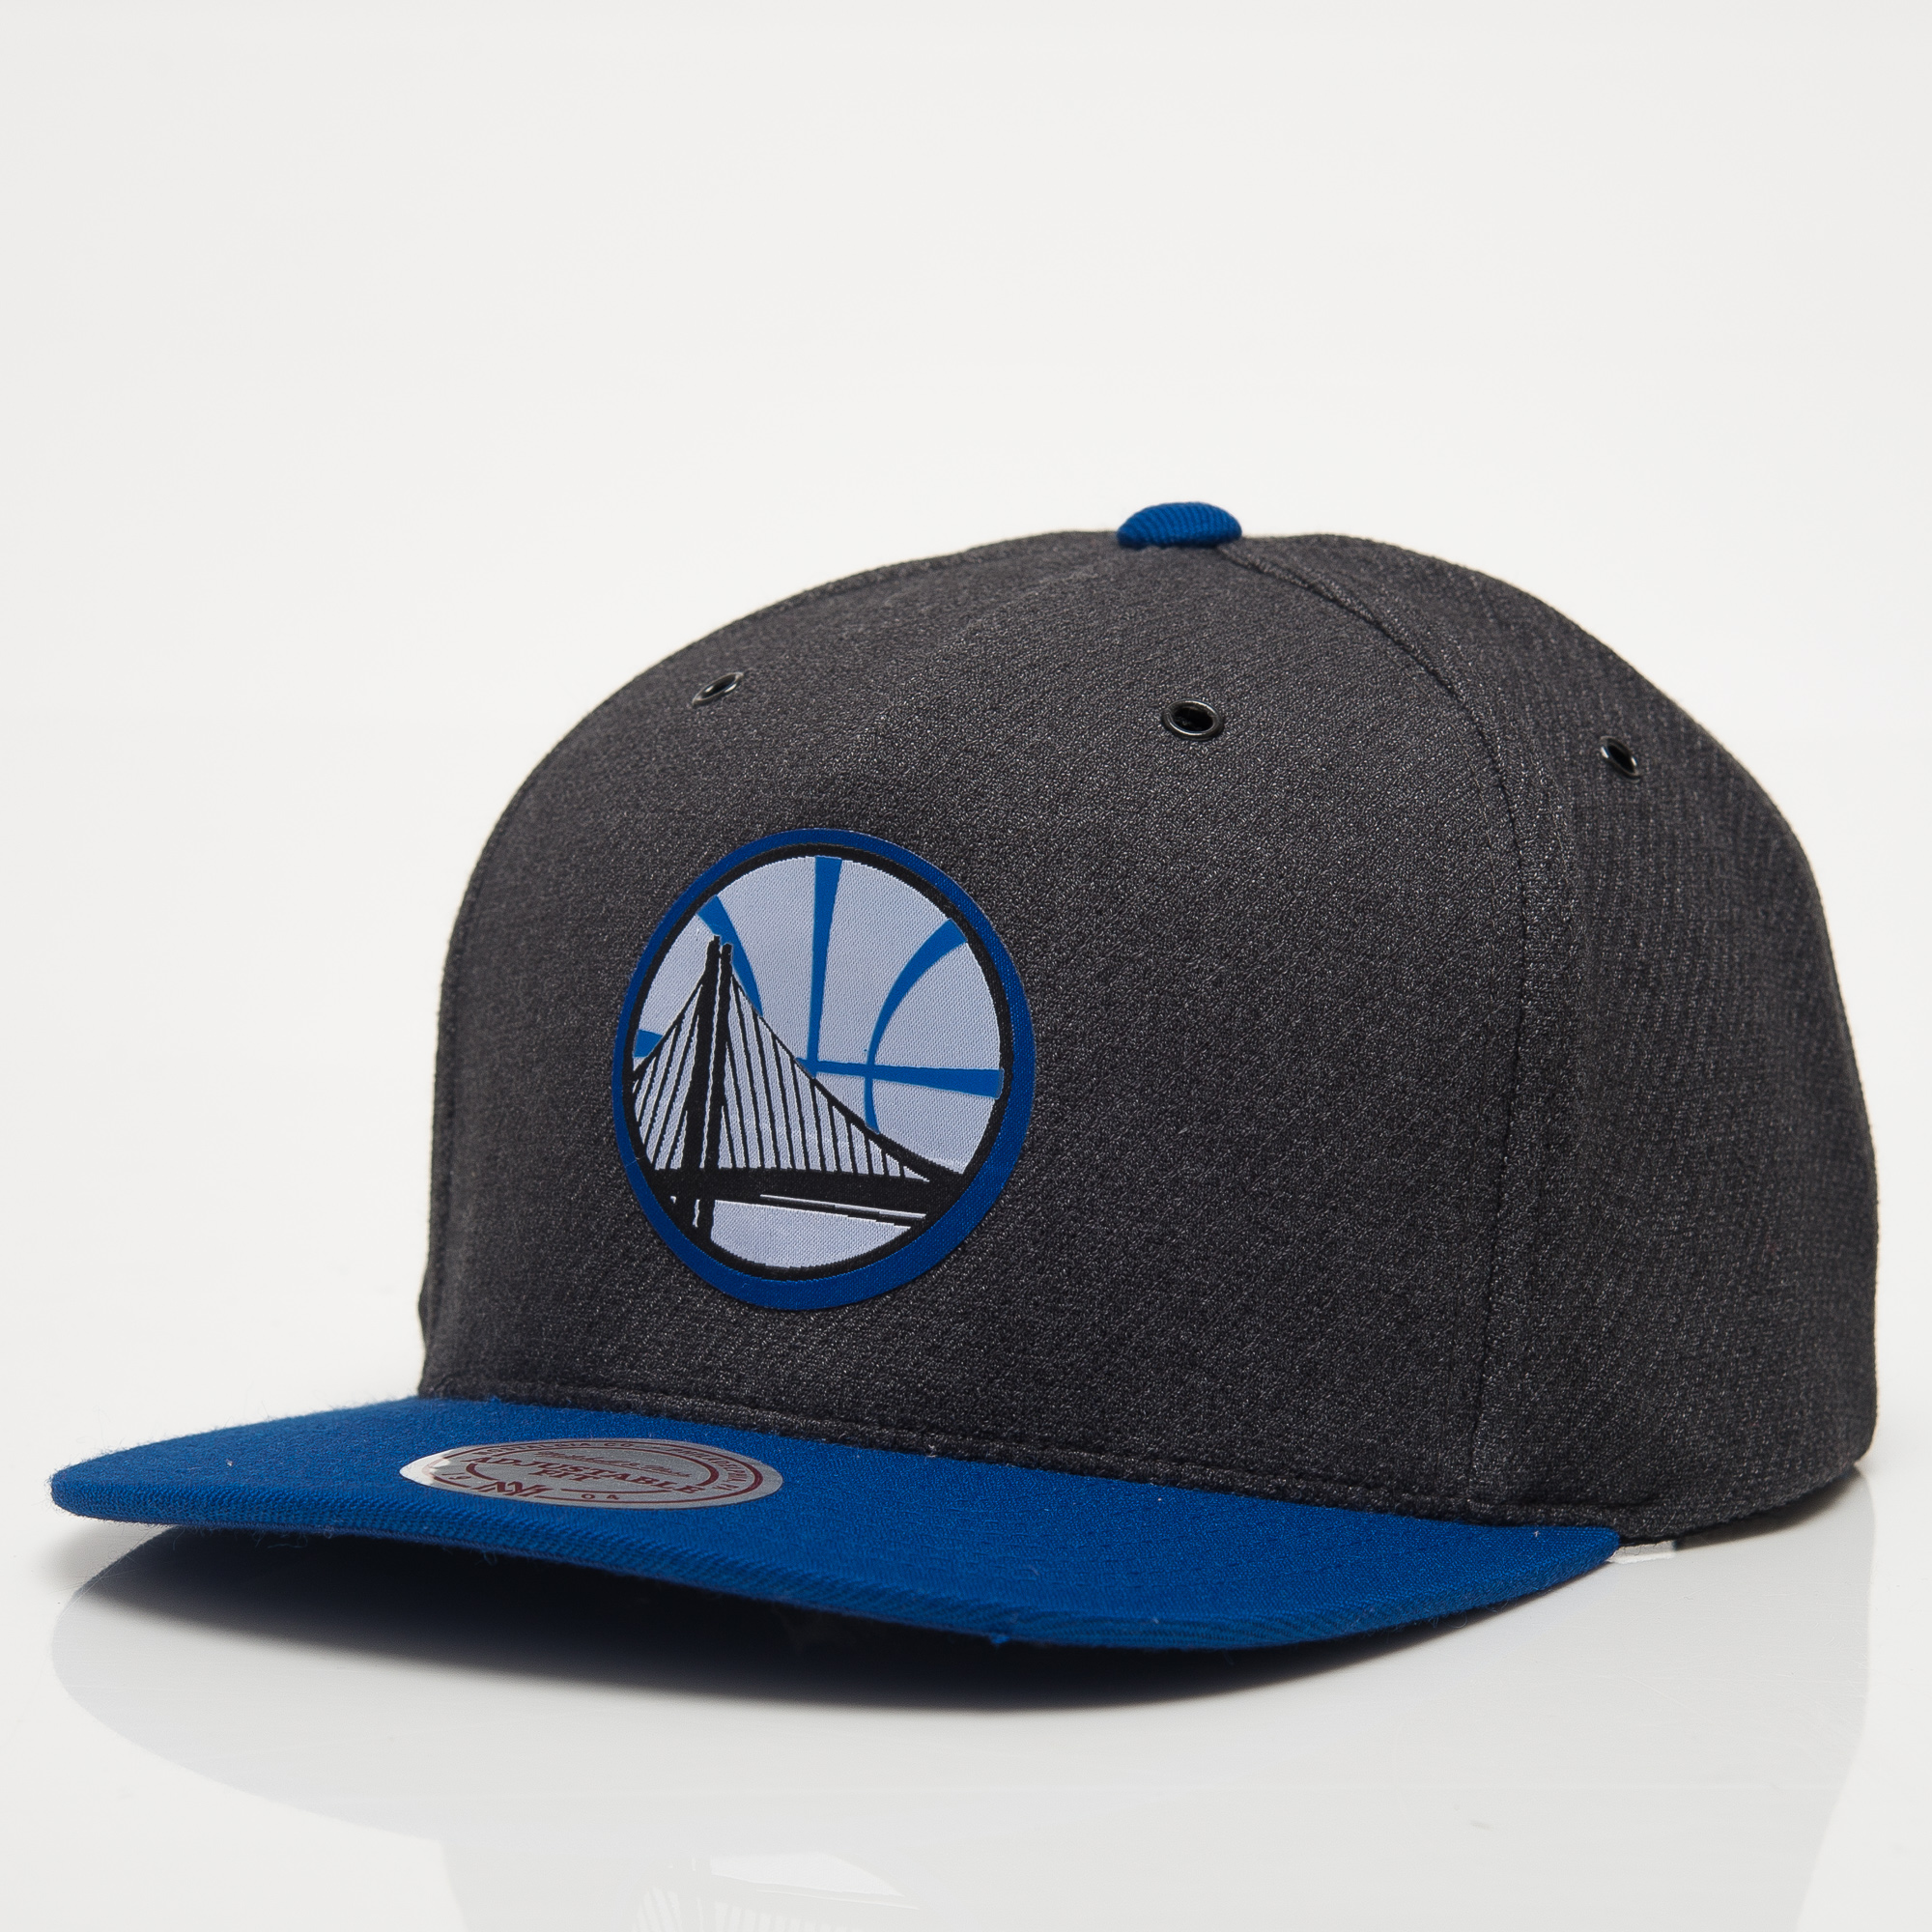 aed543a912d Mitchell   Ness NBA Golden State Warriors Woven Reflective Snapback ...